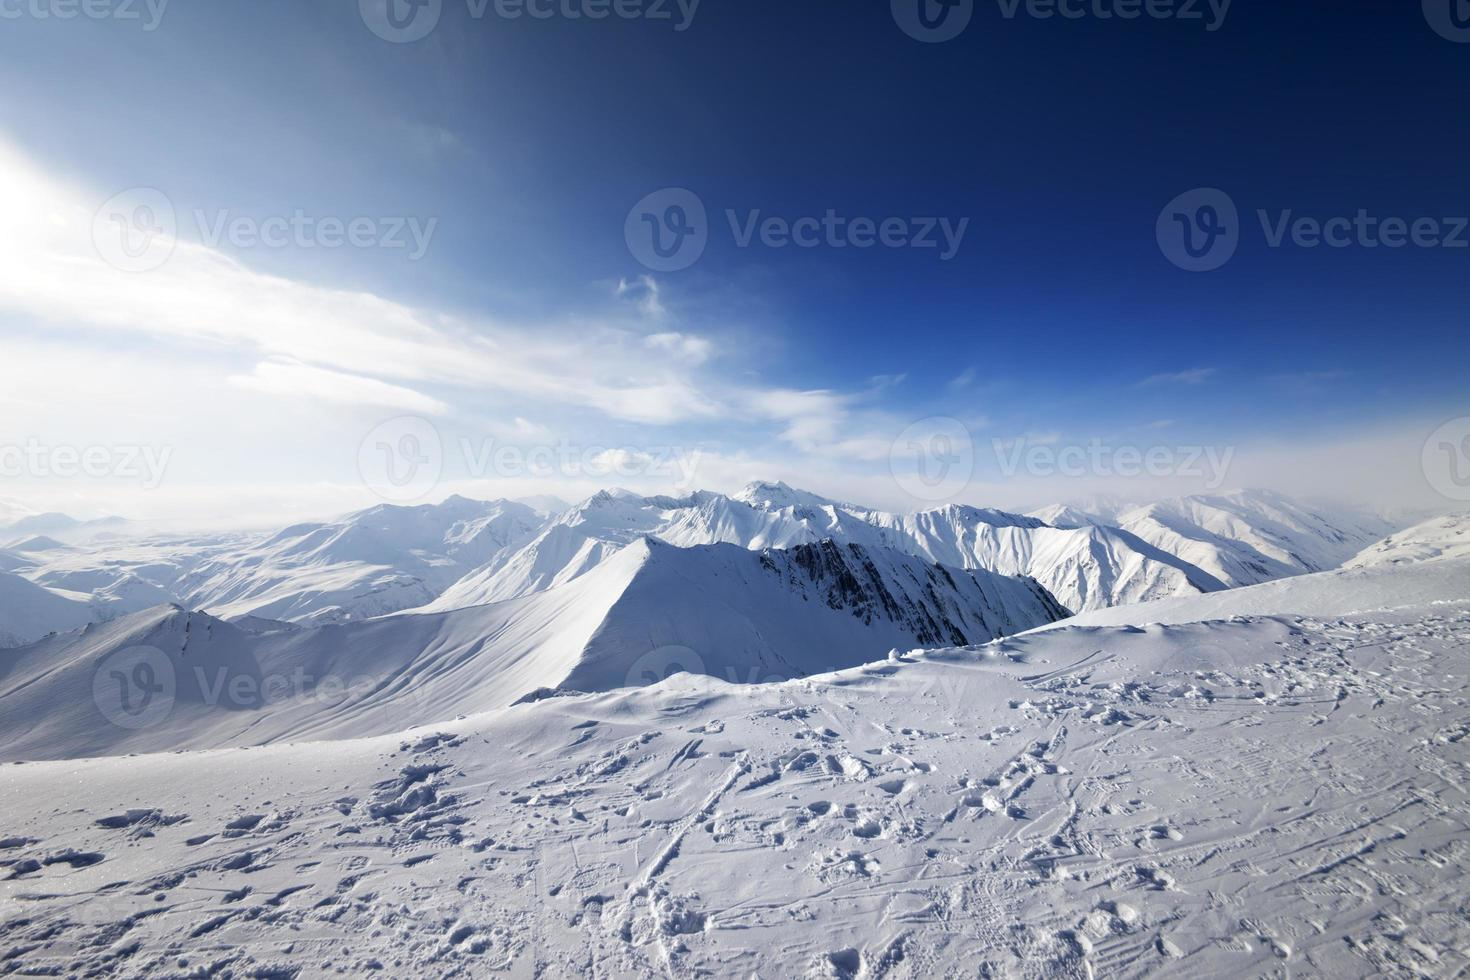 Snowy mountains at nice day photo